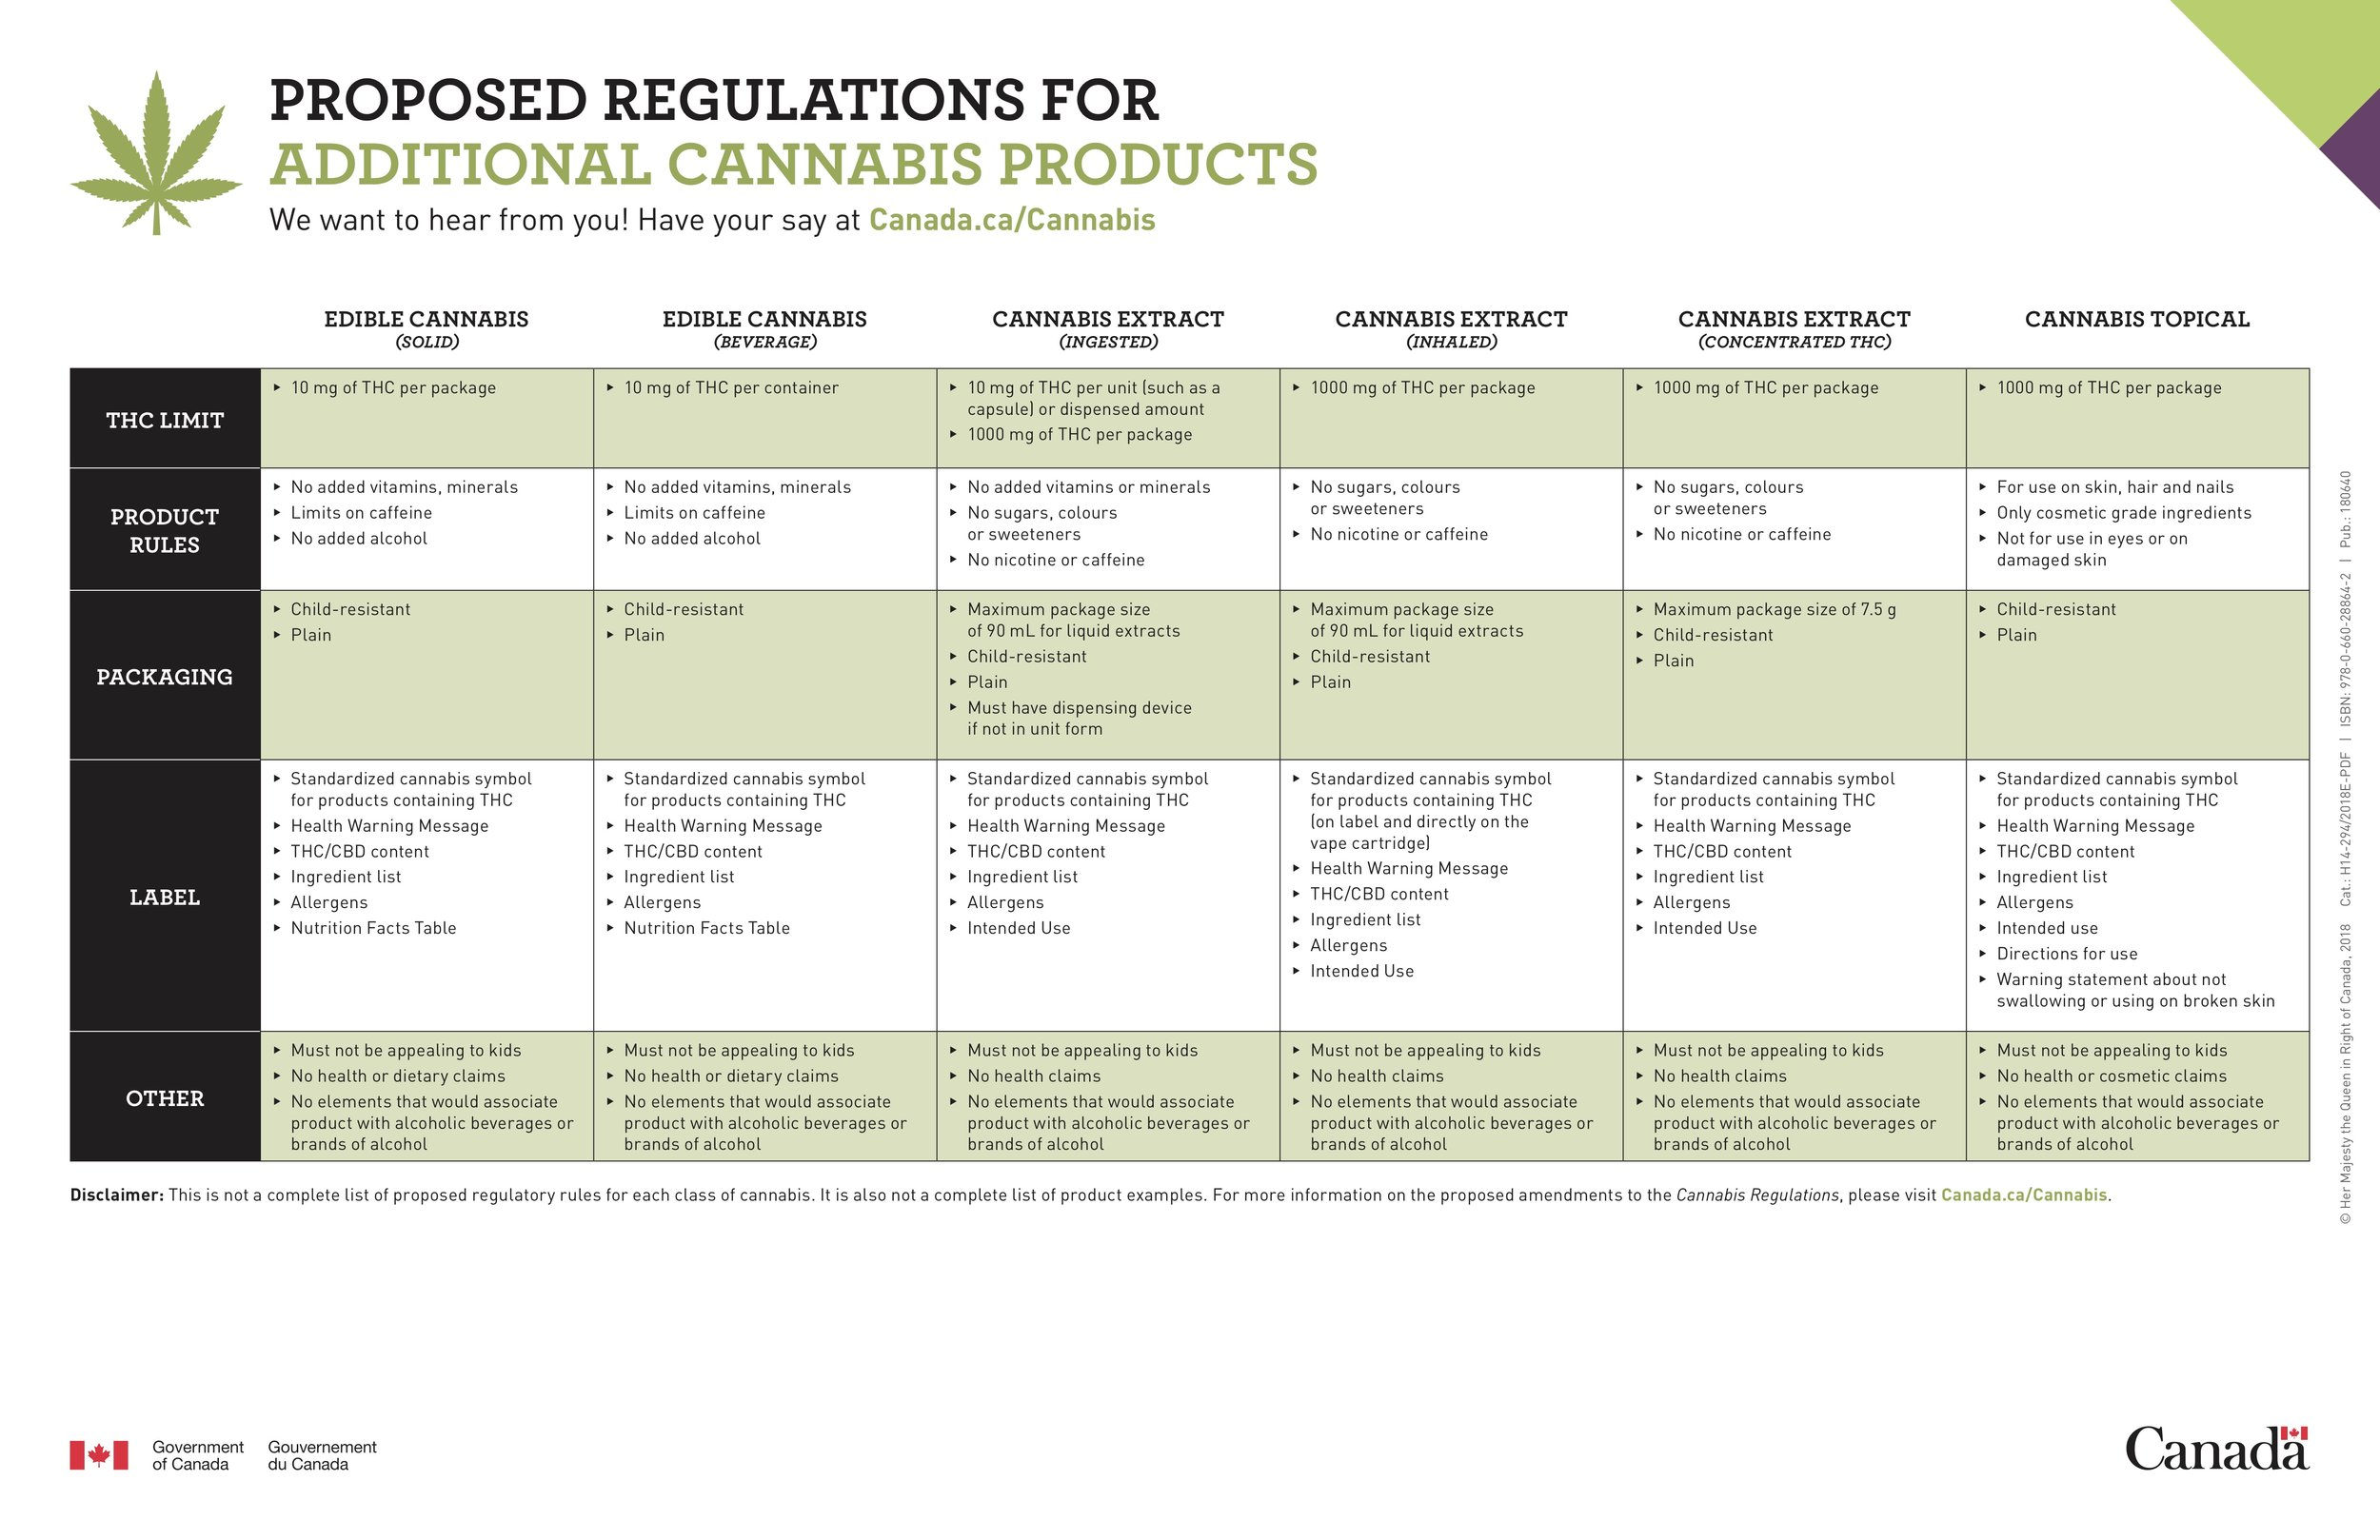 The Proposed Regulations for Cannabis Edibles via Health Canada